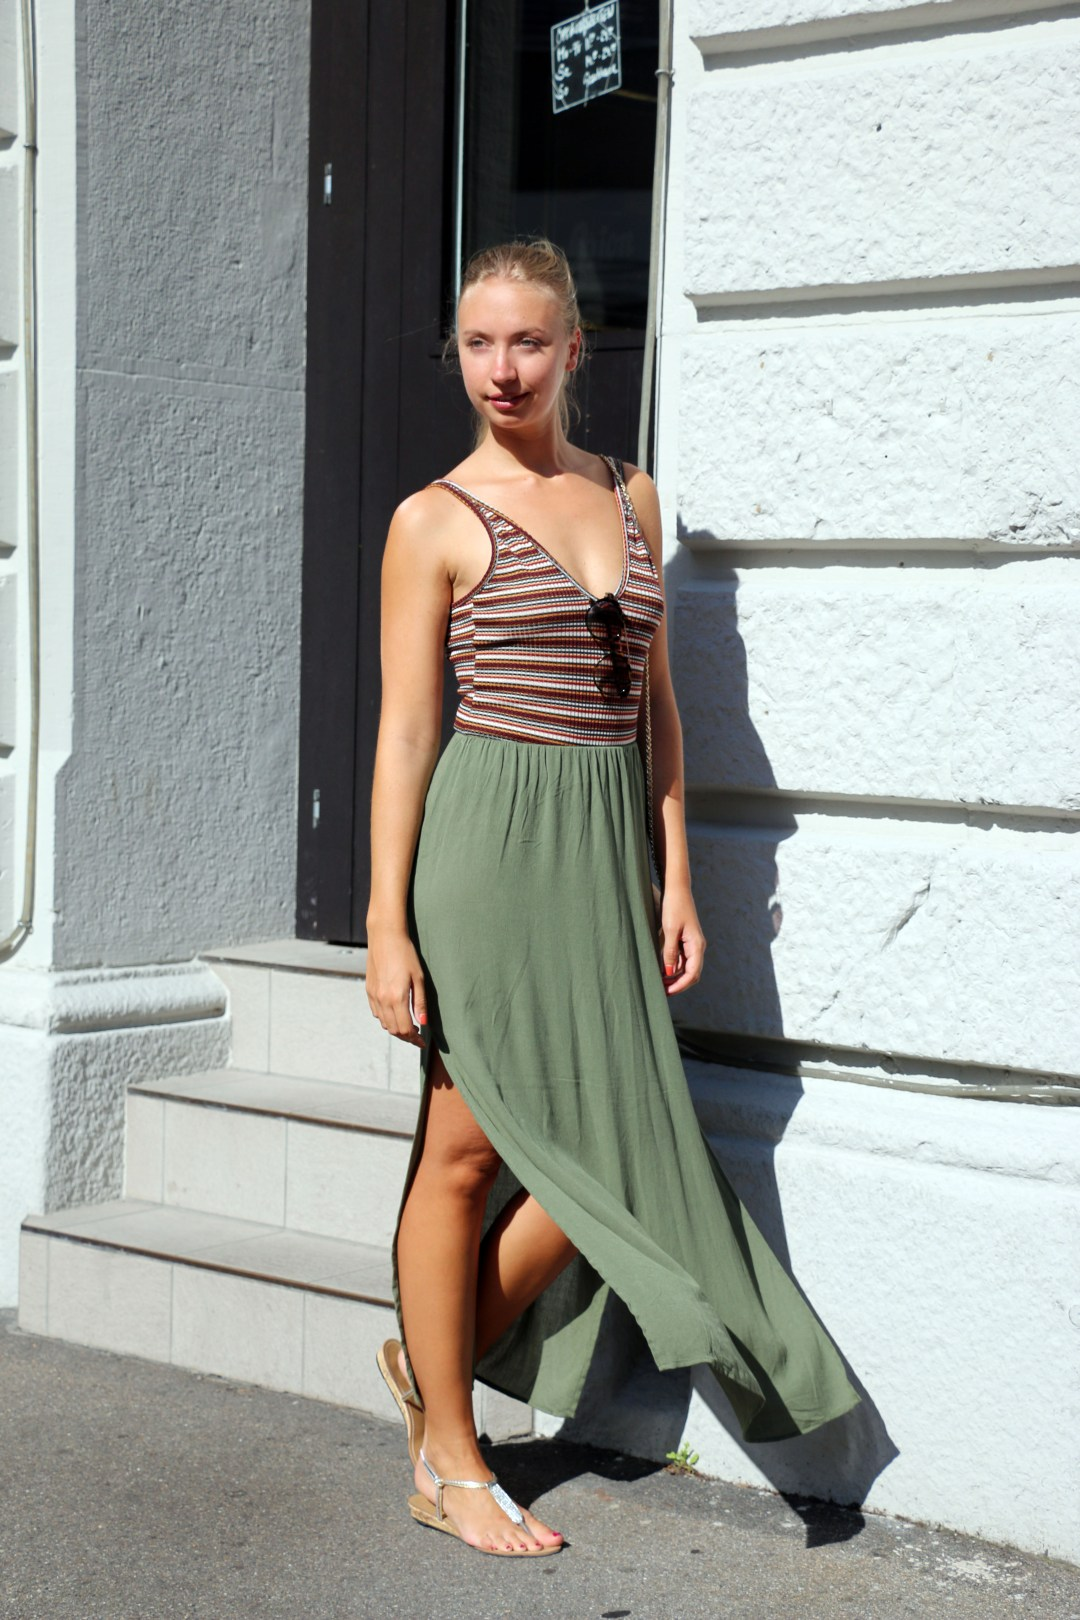 maxirock-summer-fashion-outfit-look-body-häkeltop-inspiration-city-look-sommer